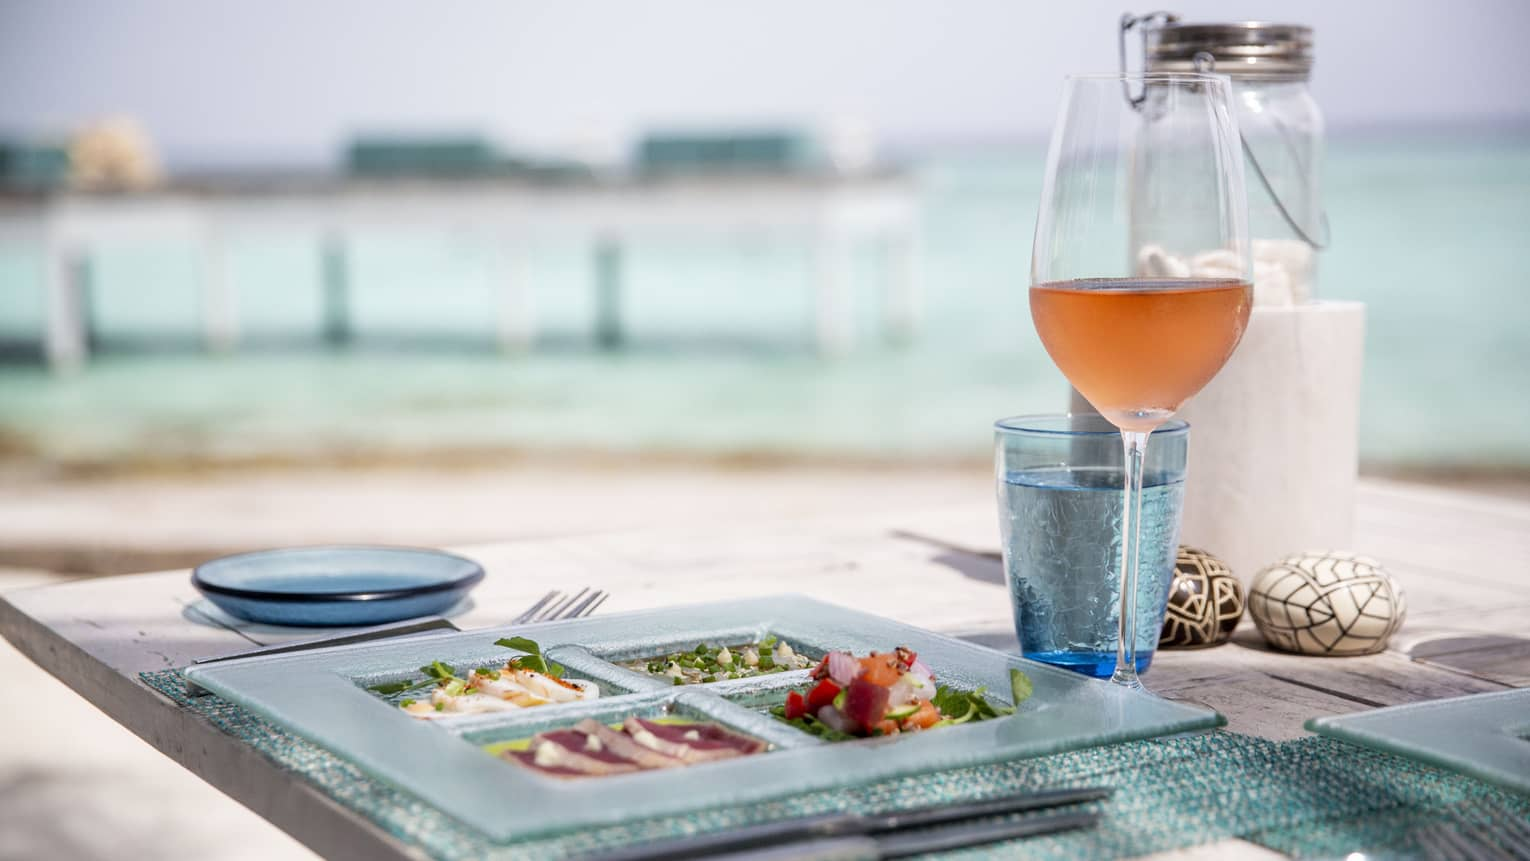 Outdoor dining table with glass plate with sashimi, wine overlooking lagoon